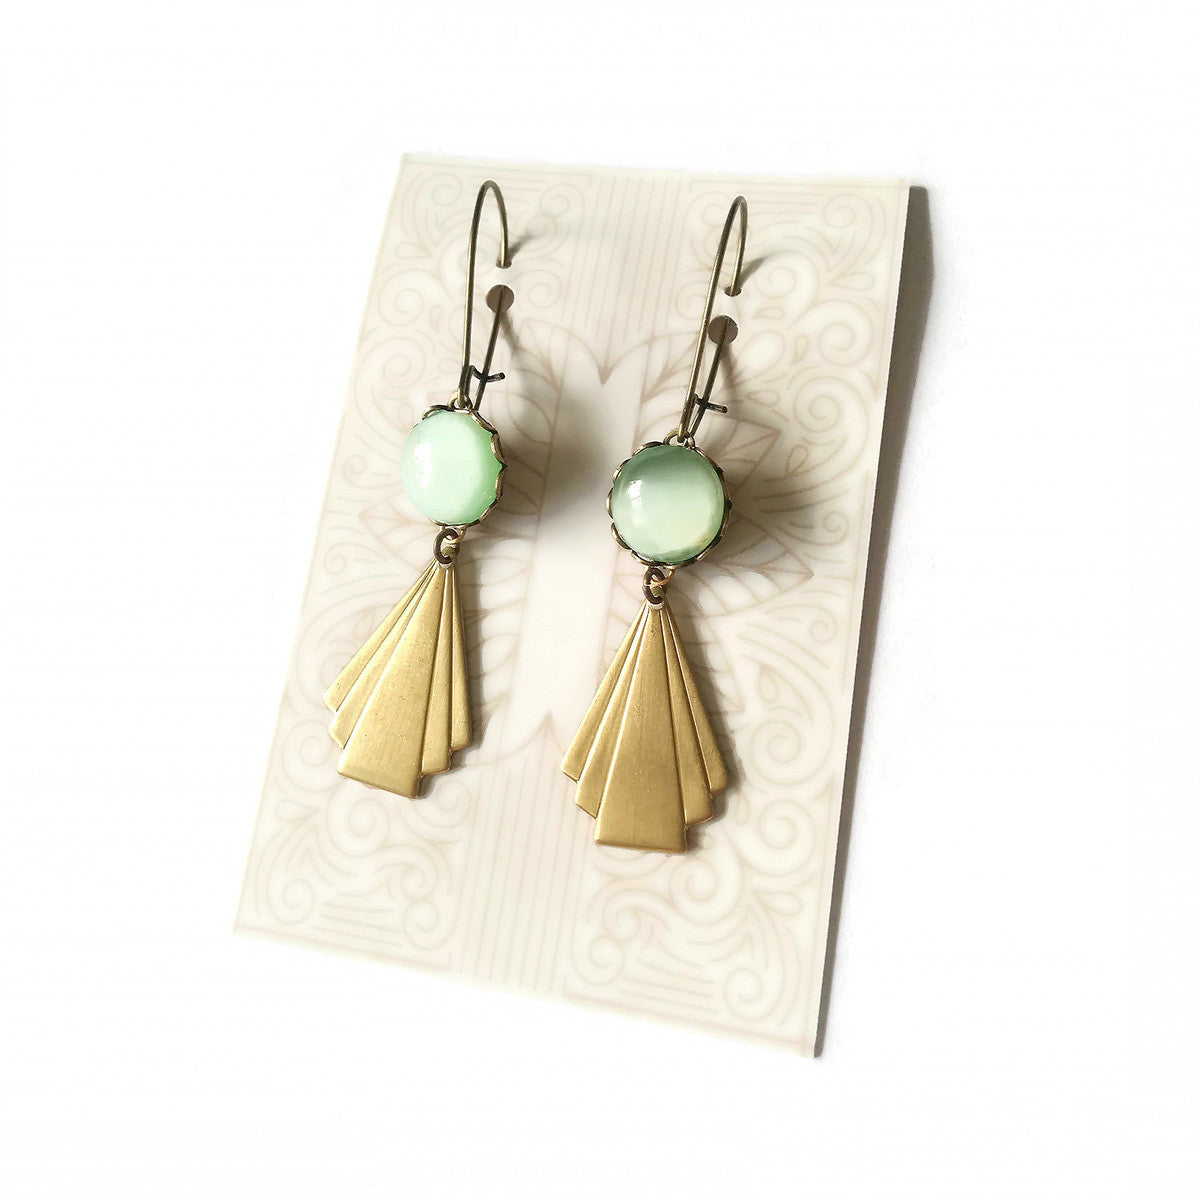 Dune II Earrings (SD0535)